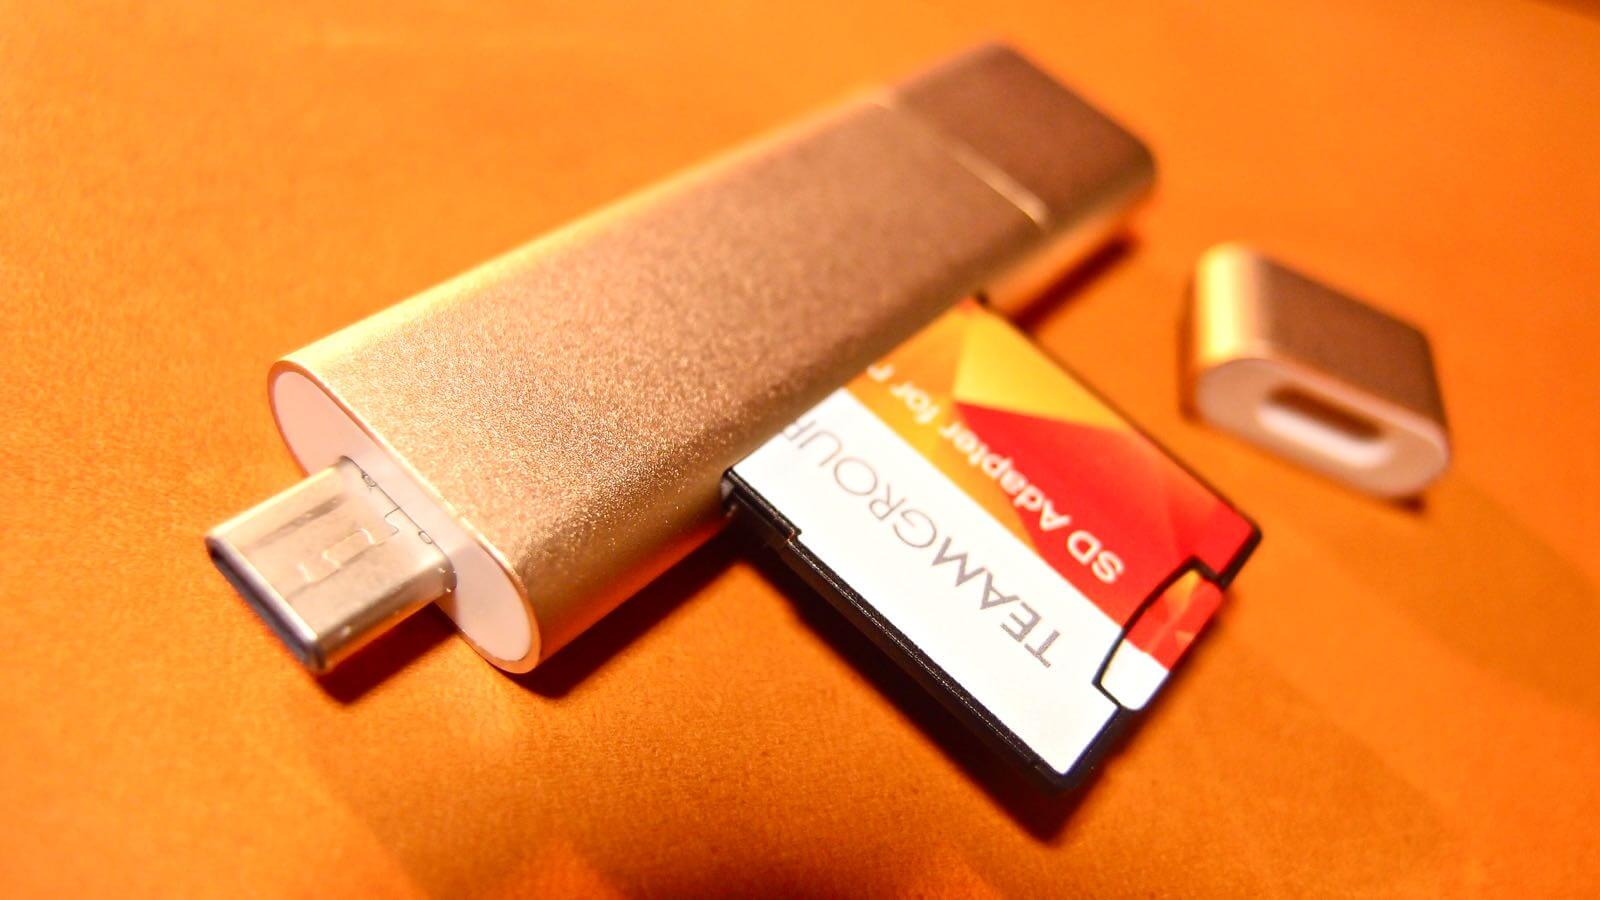 0164 10 SATECHI Type C plus USB3 0 USB Card Reader Review 09